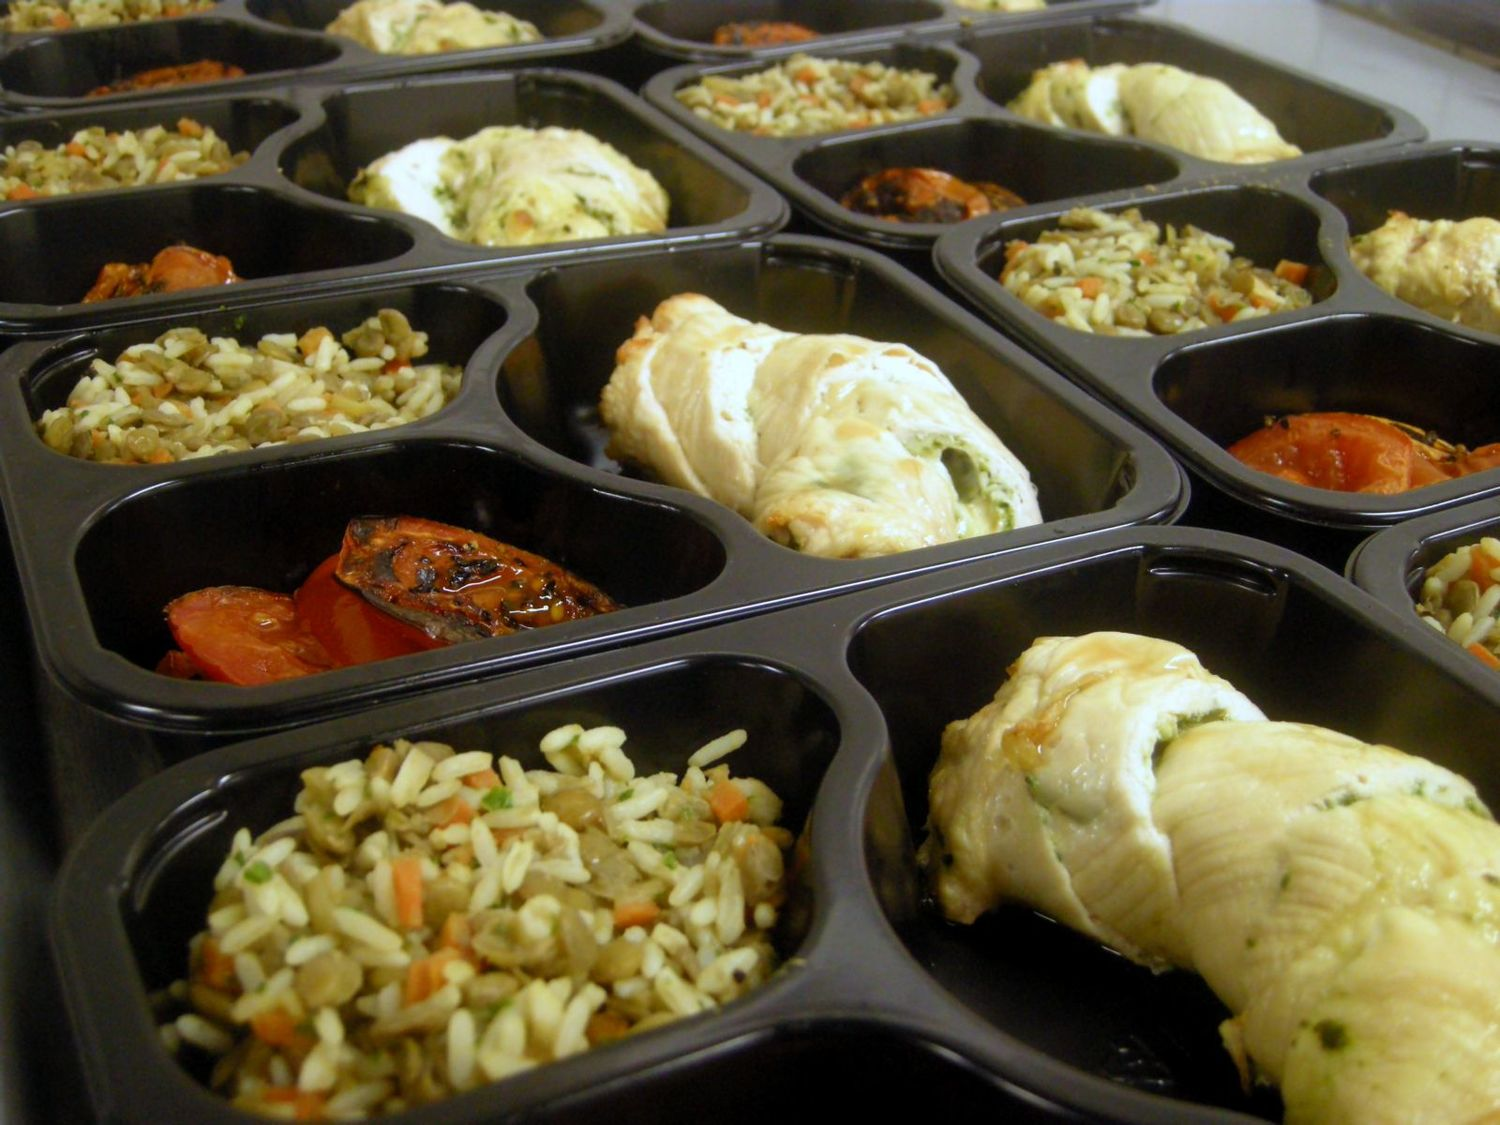 Prepared meals on a table ready to be sent out.